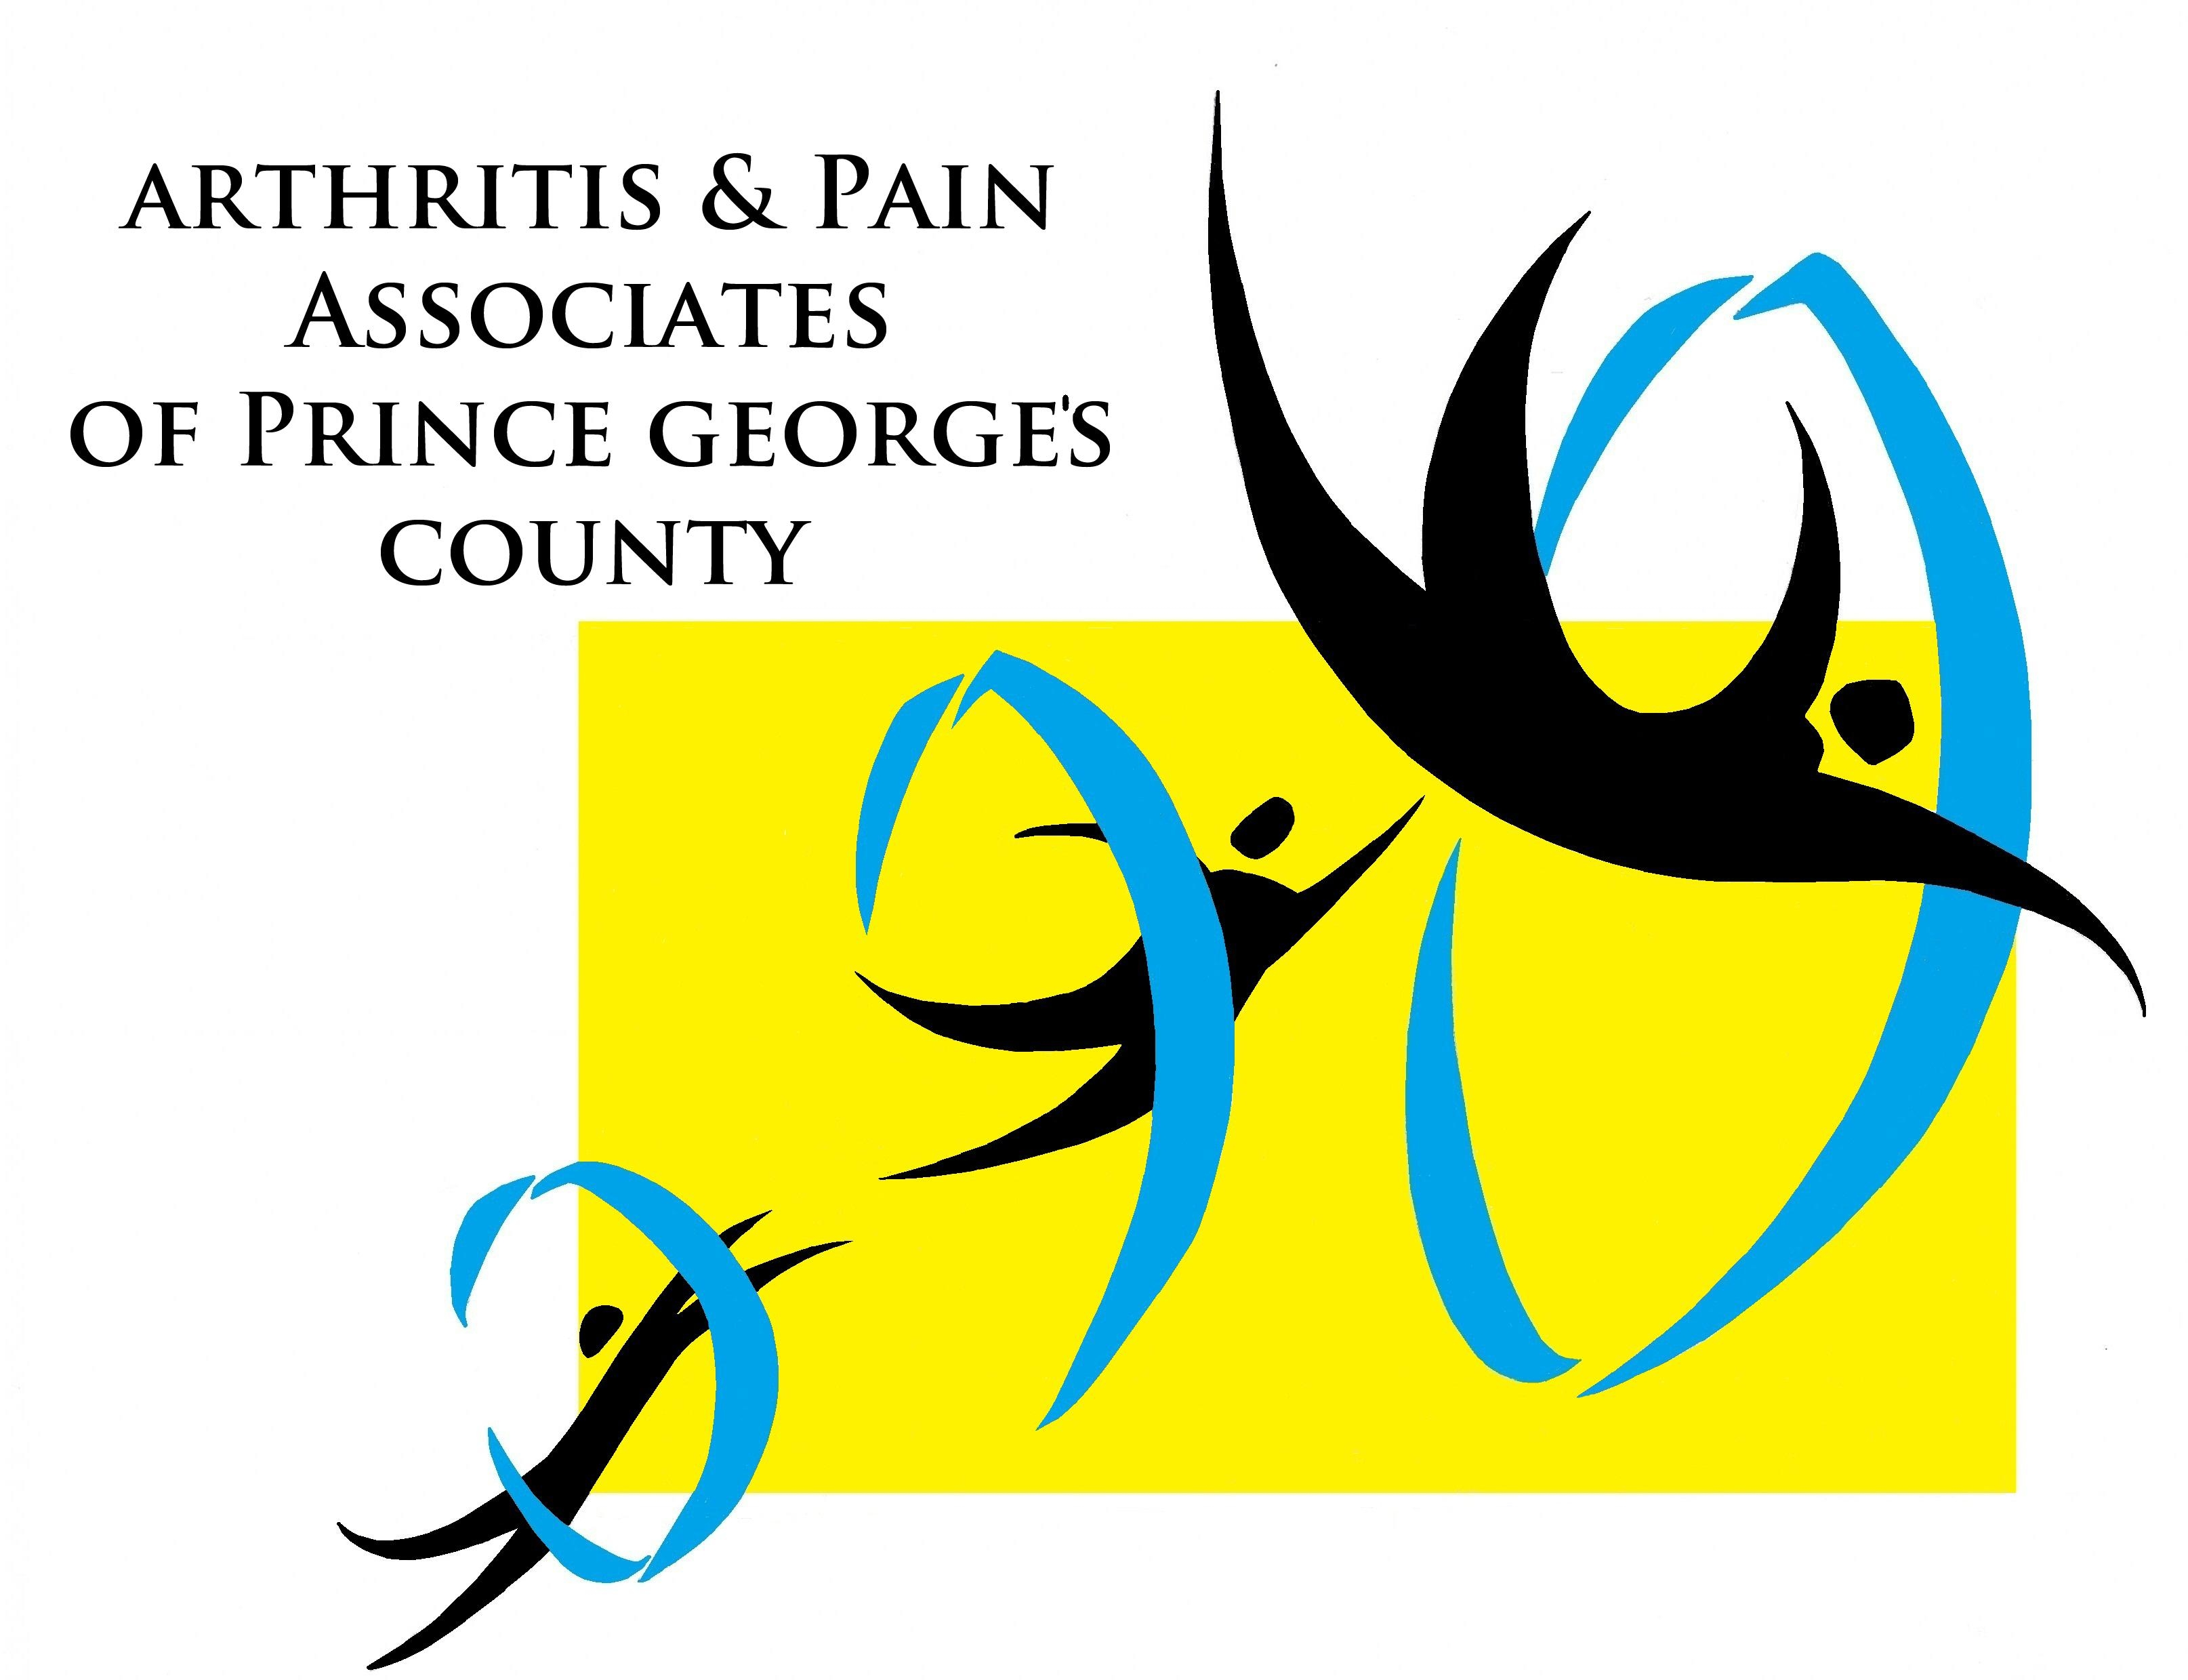 Arthritis & Pain Associates of Prince George's County